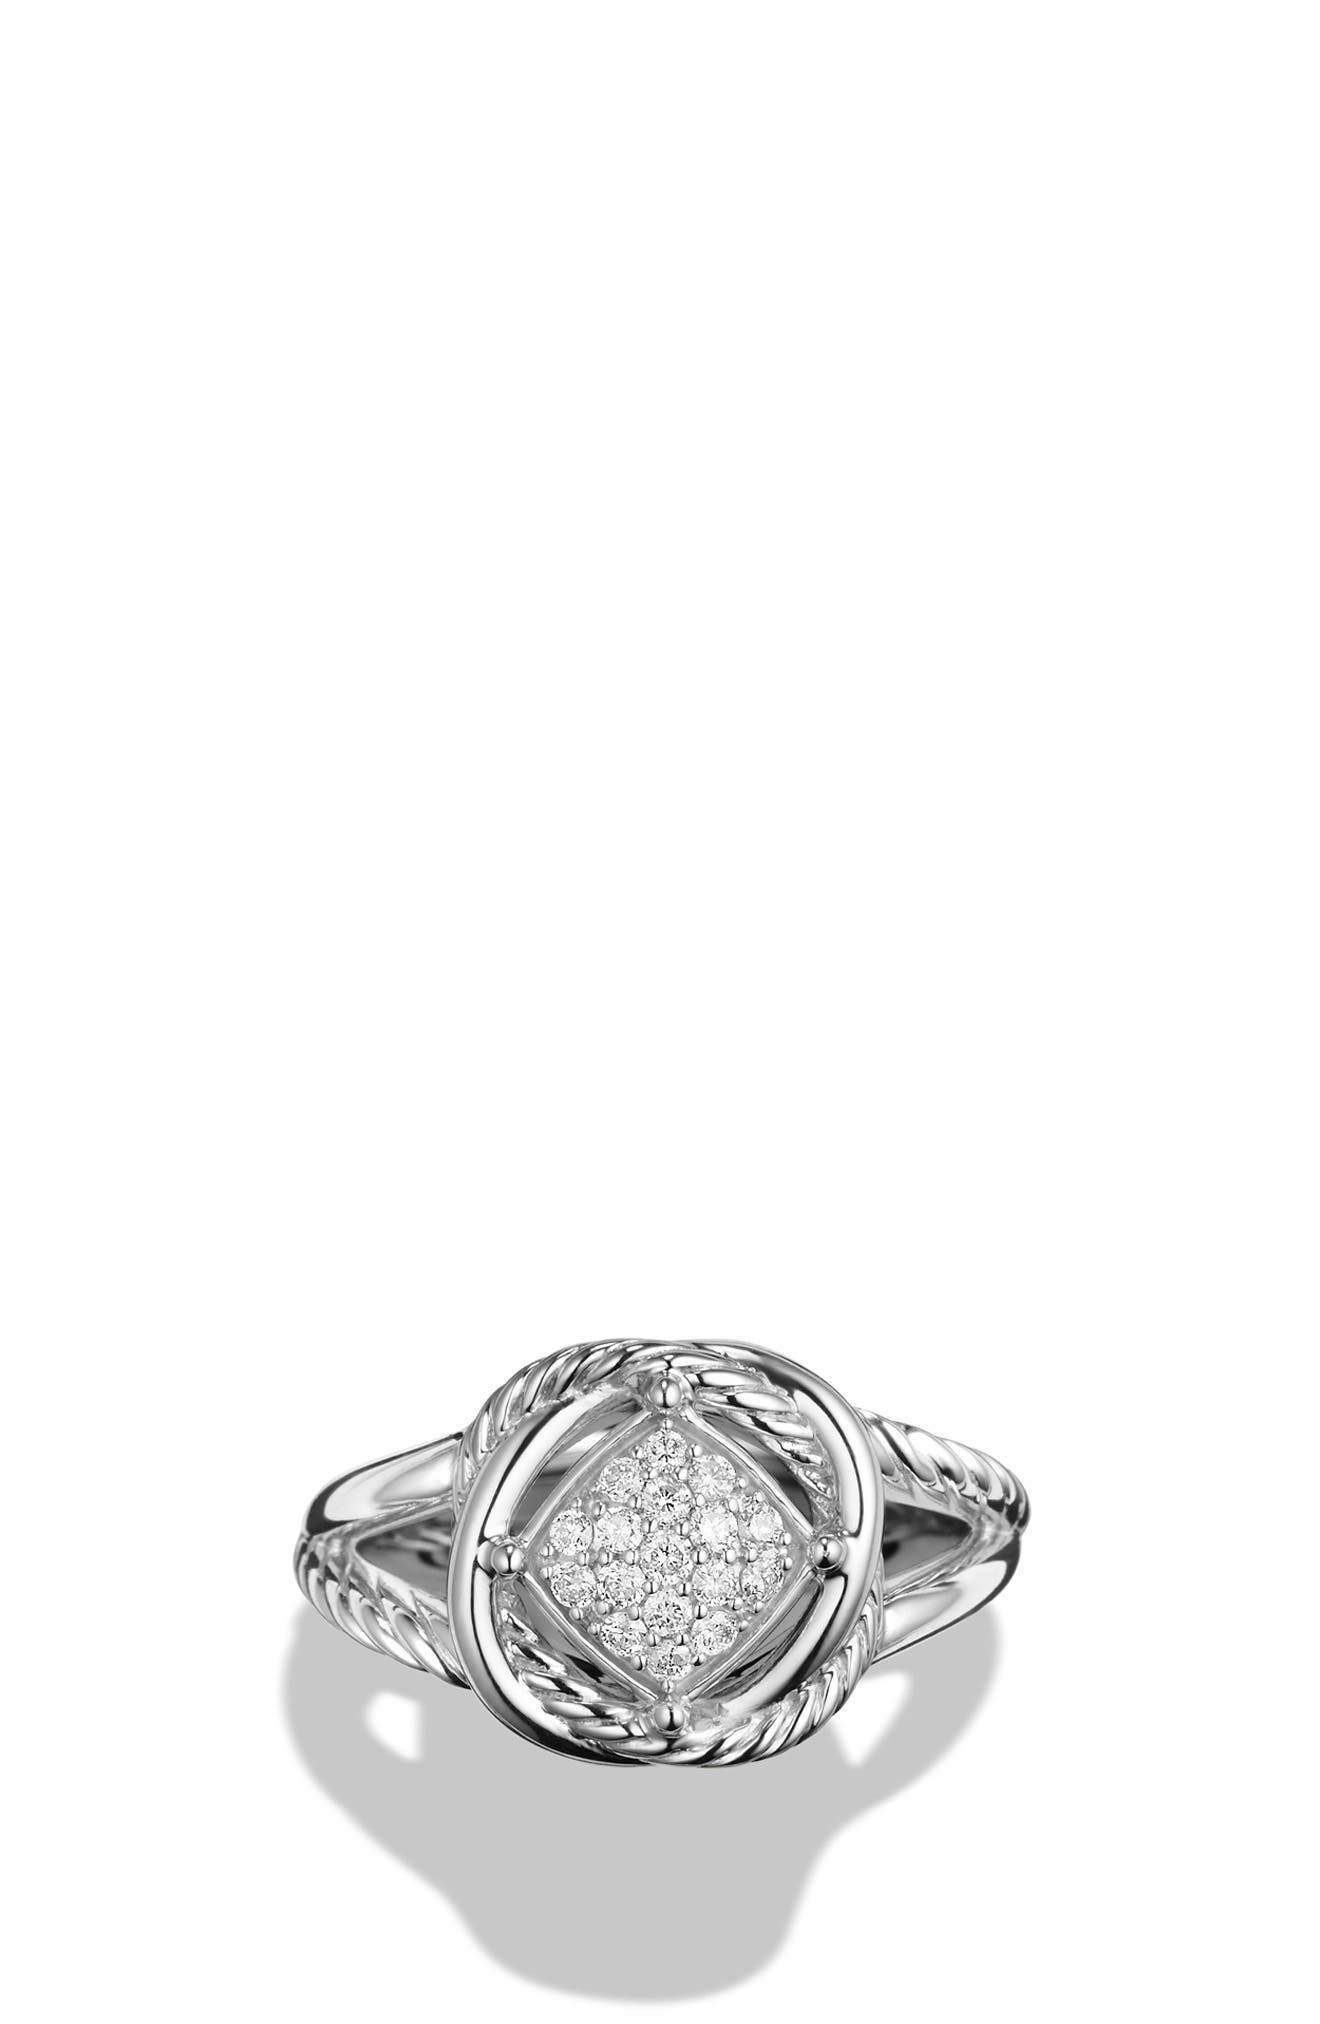 'Infinity' Ring with Diamonds,                             Alternate thumbnail 4, color,                             DIAMOND